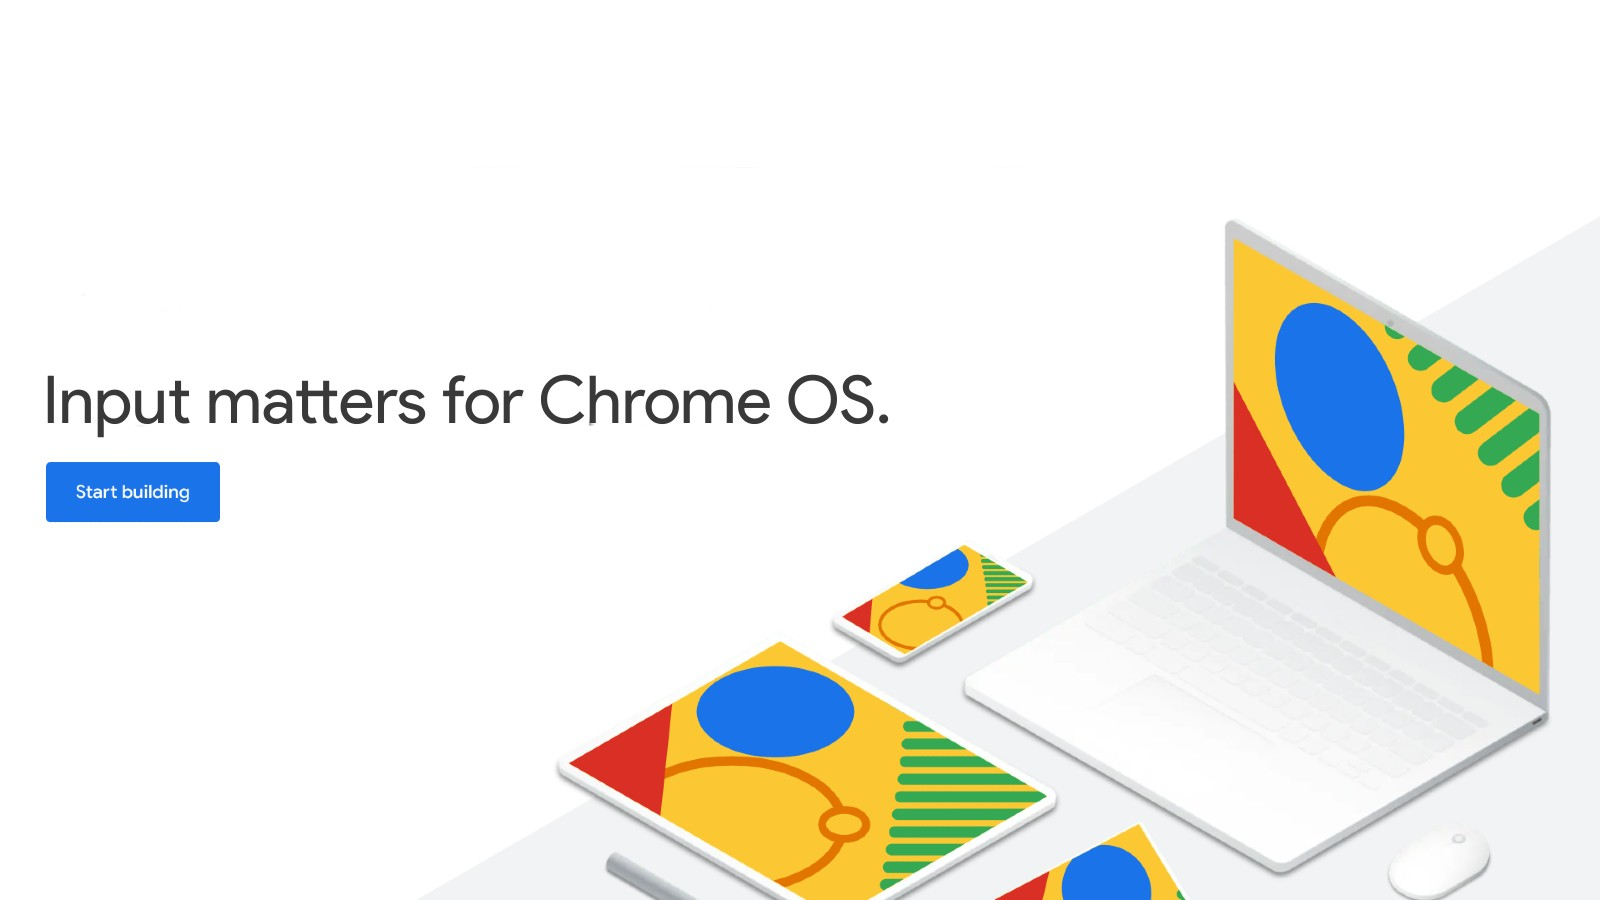 Google wants Android apps and games to suck less on Chromebooks, and it's about time they do